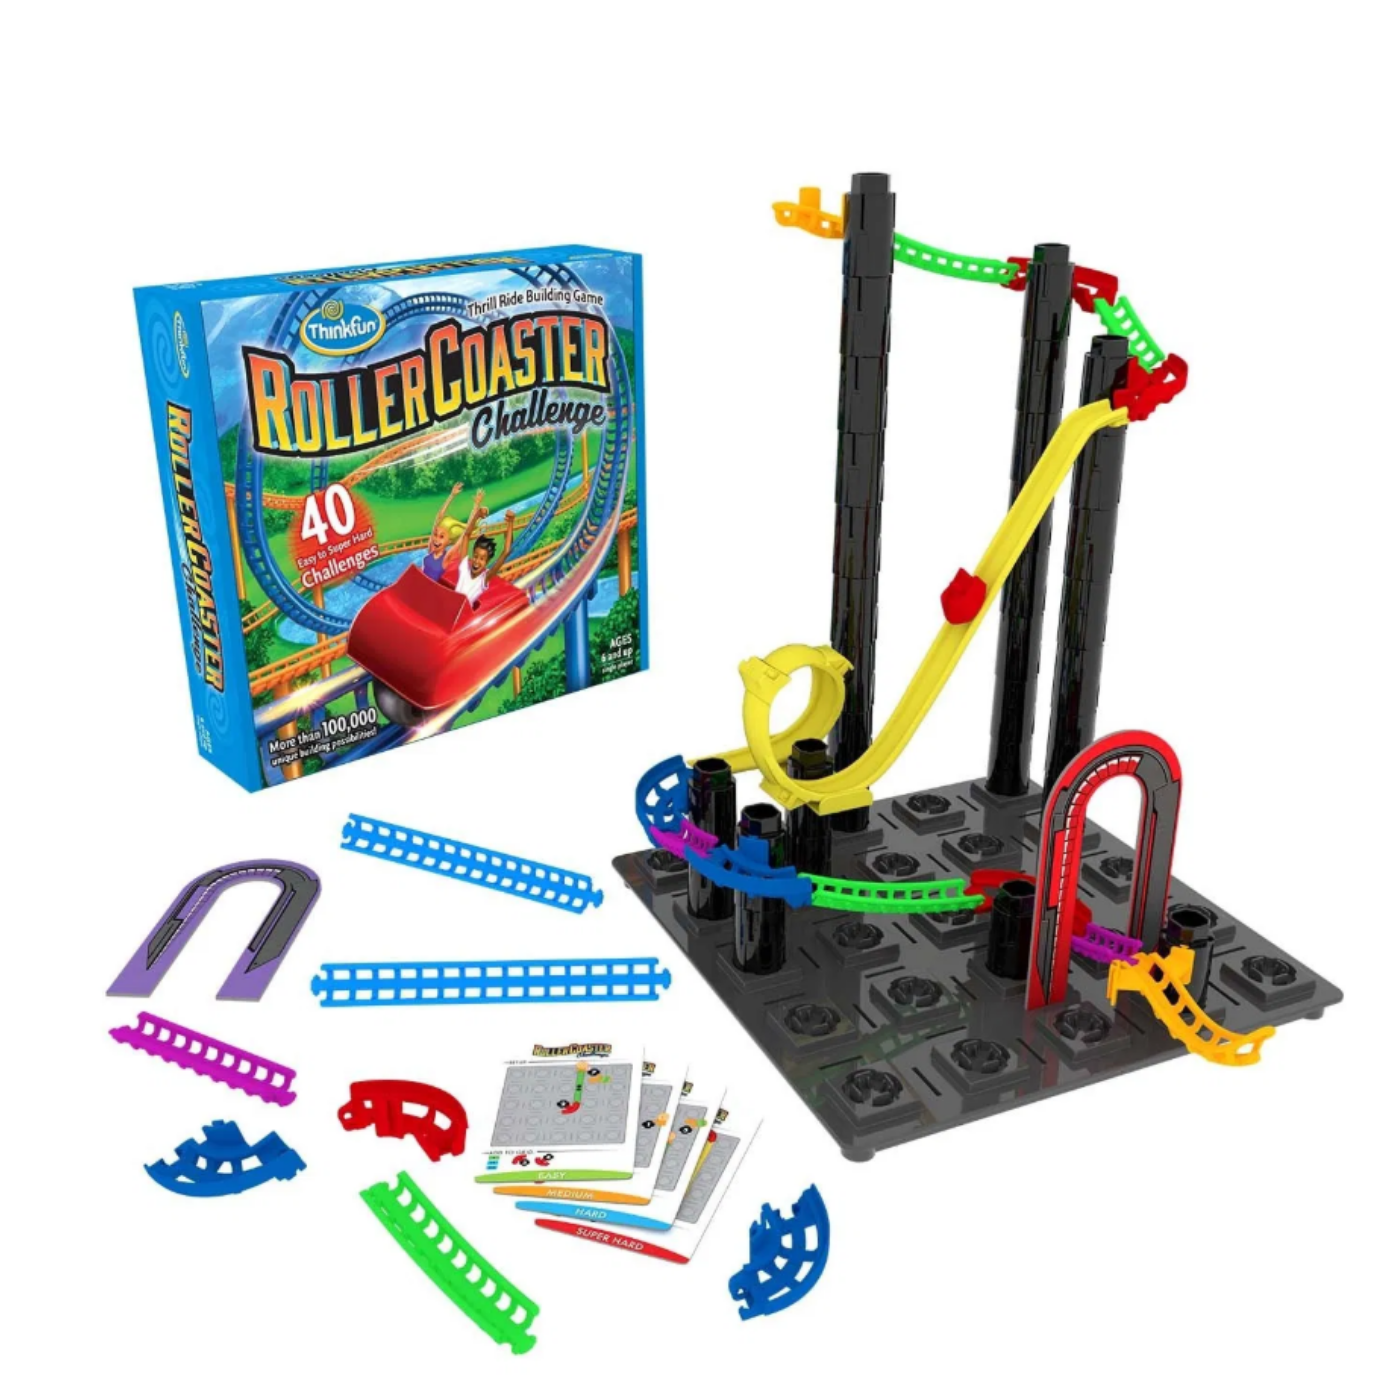 Roller Coaster Challenge™ by Thinkfun